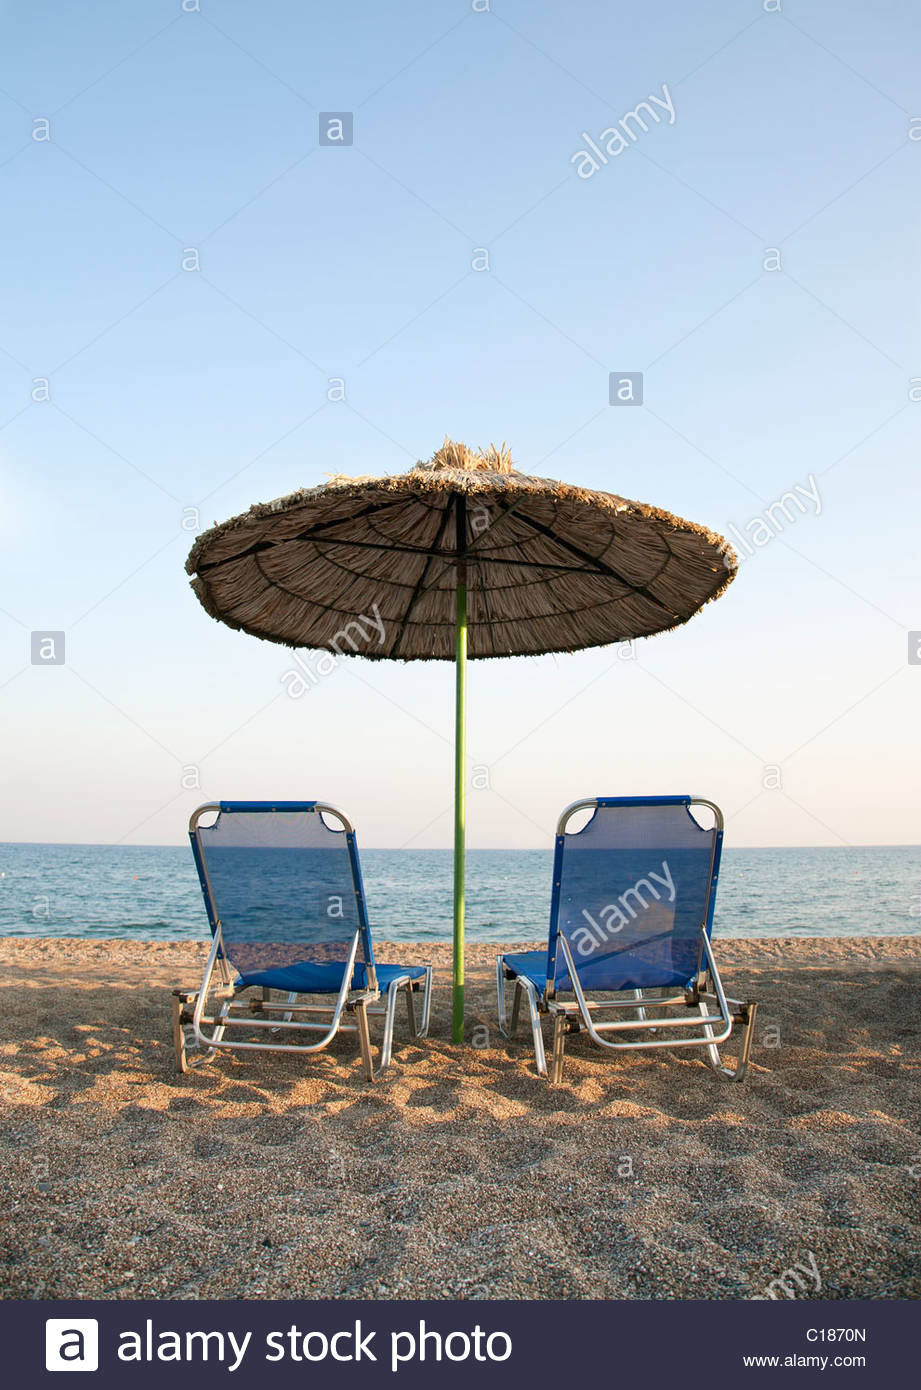 Two sun loungers and parasol on the beach - Stock Image